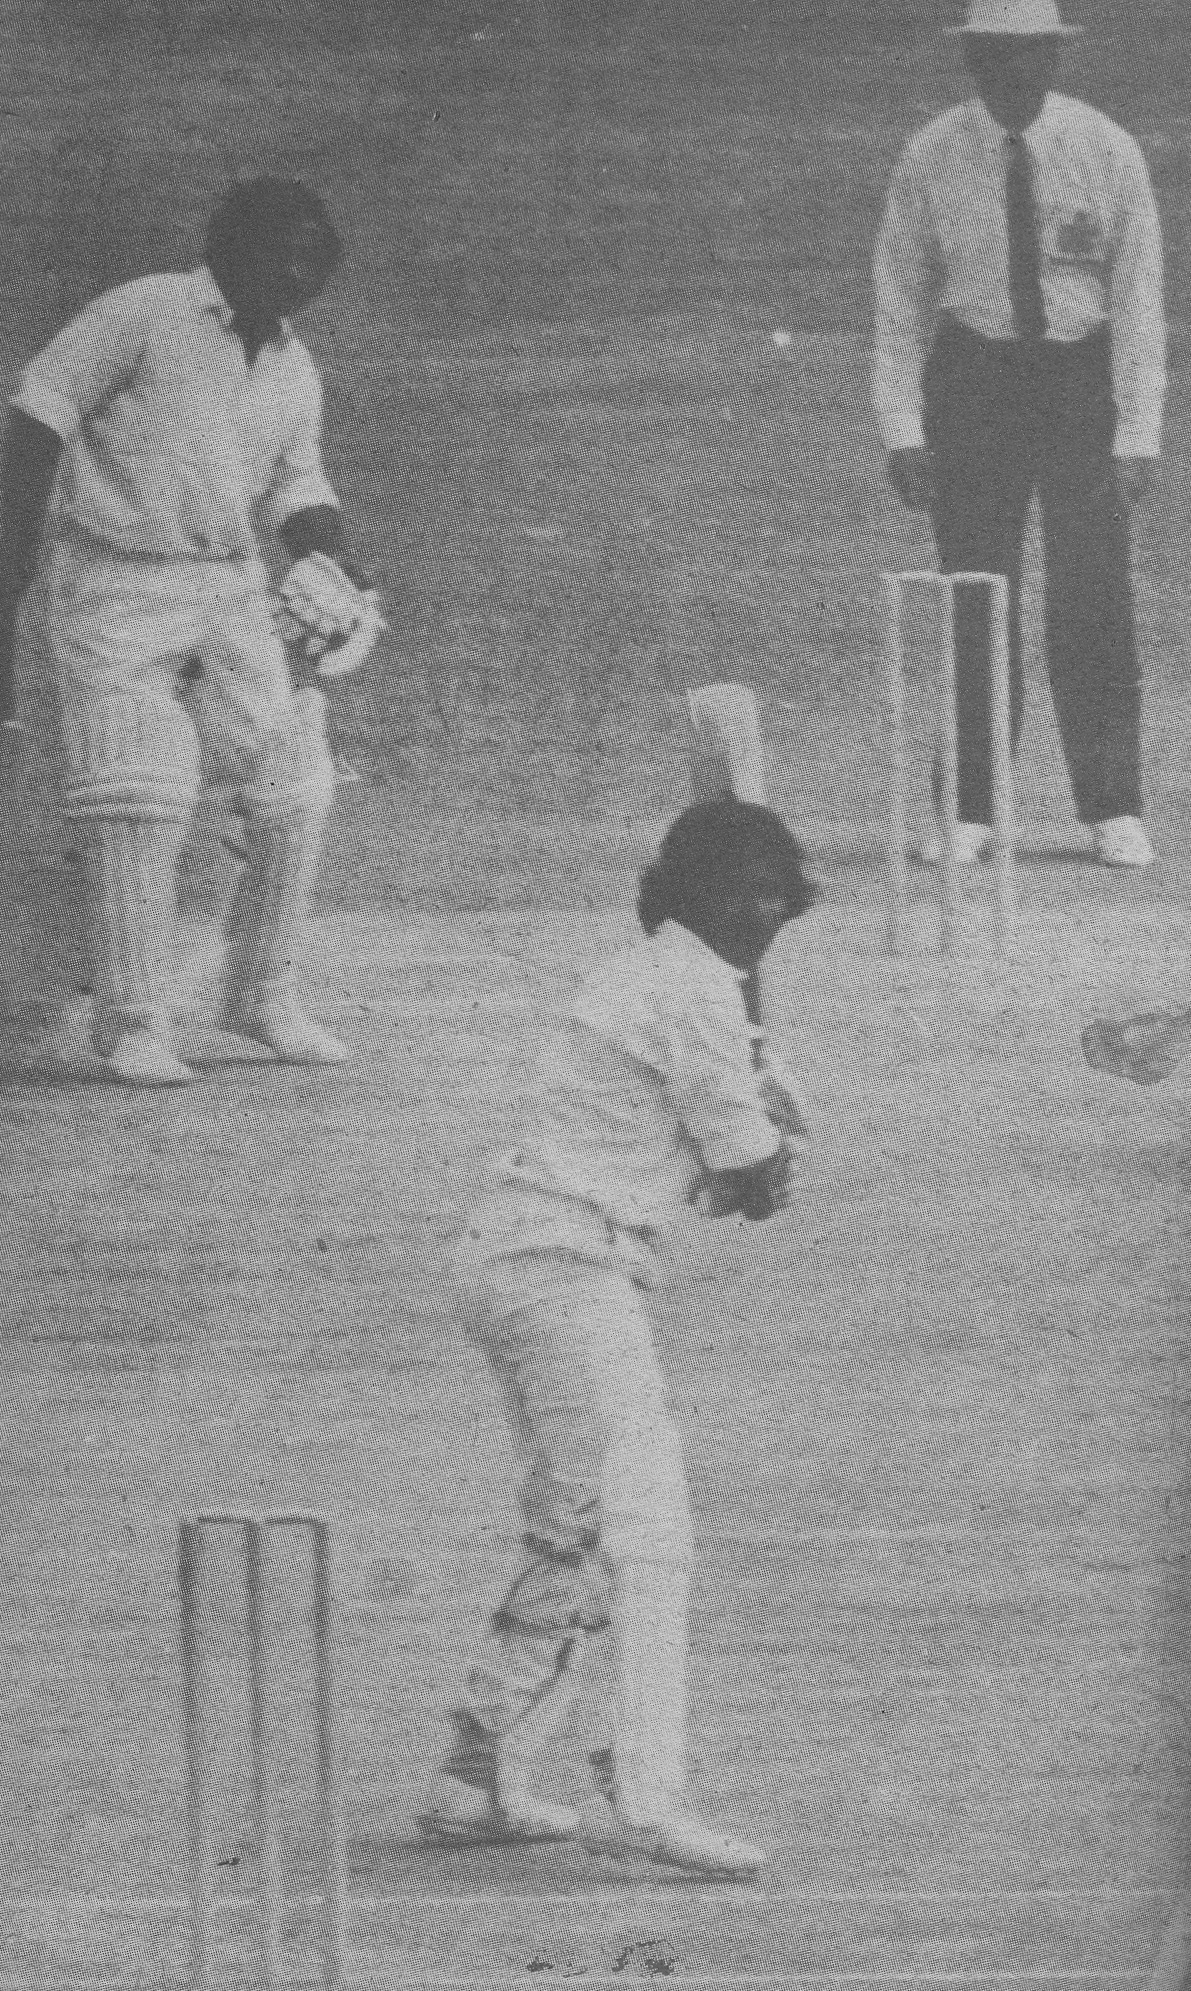 Another one bites the dust: Javed Miandad goes for 10 watched by skipper Mushtaq as Pakistan collapse in the second Test.